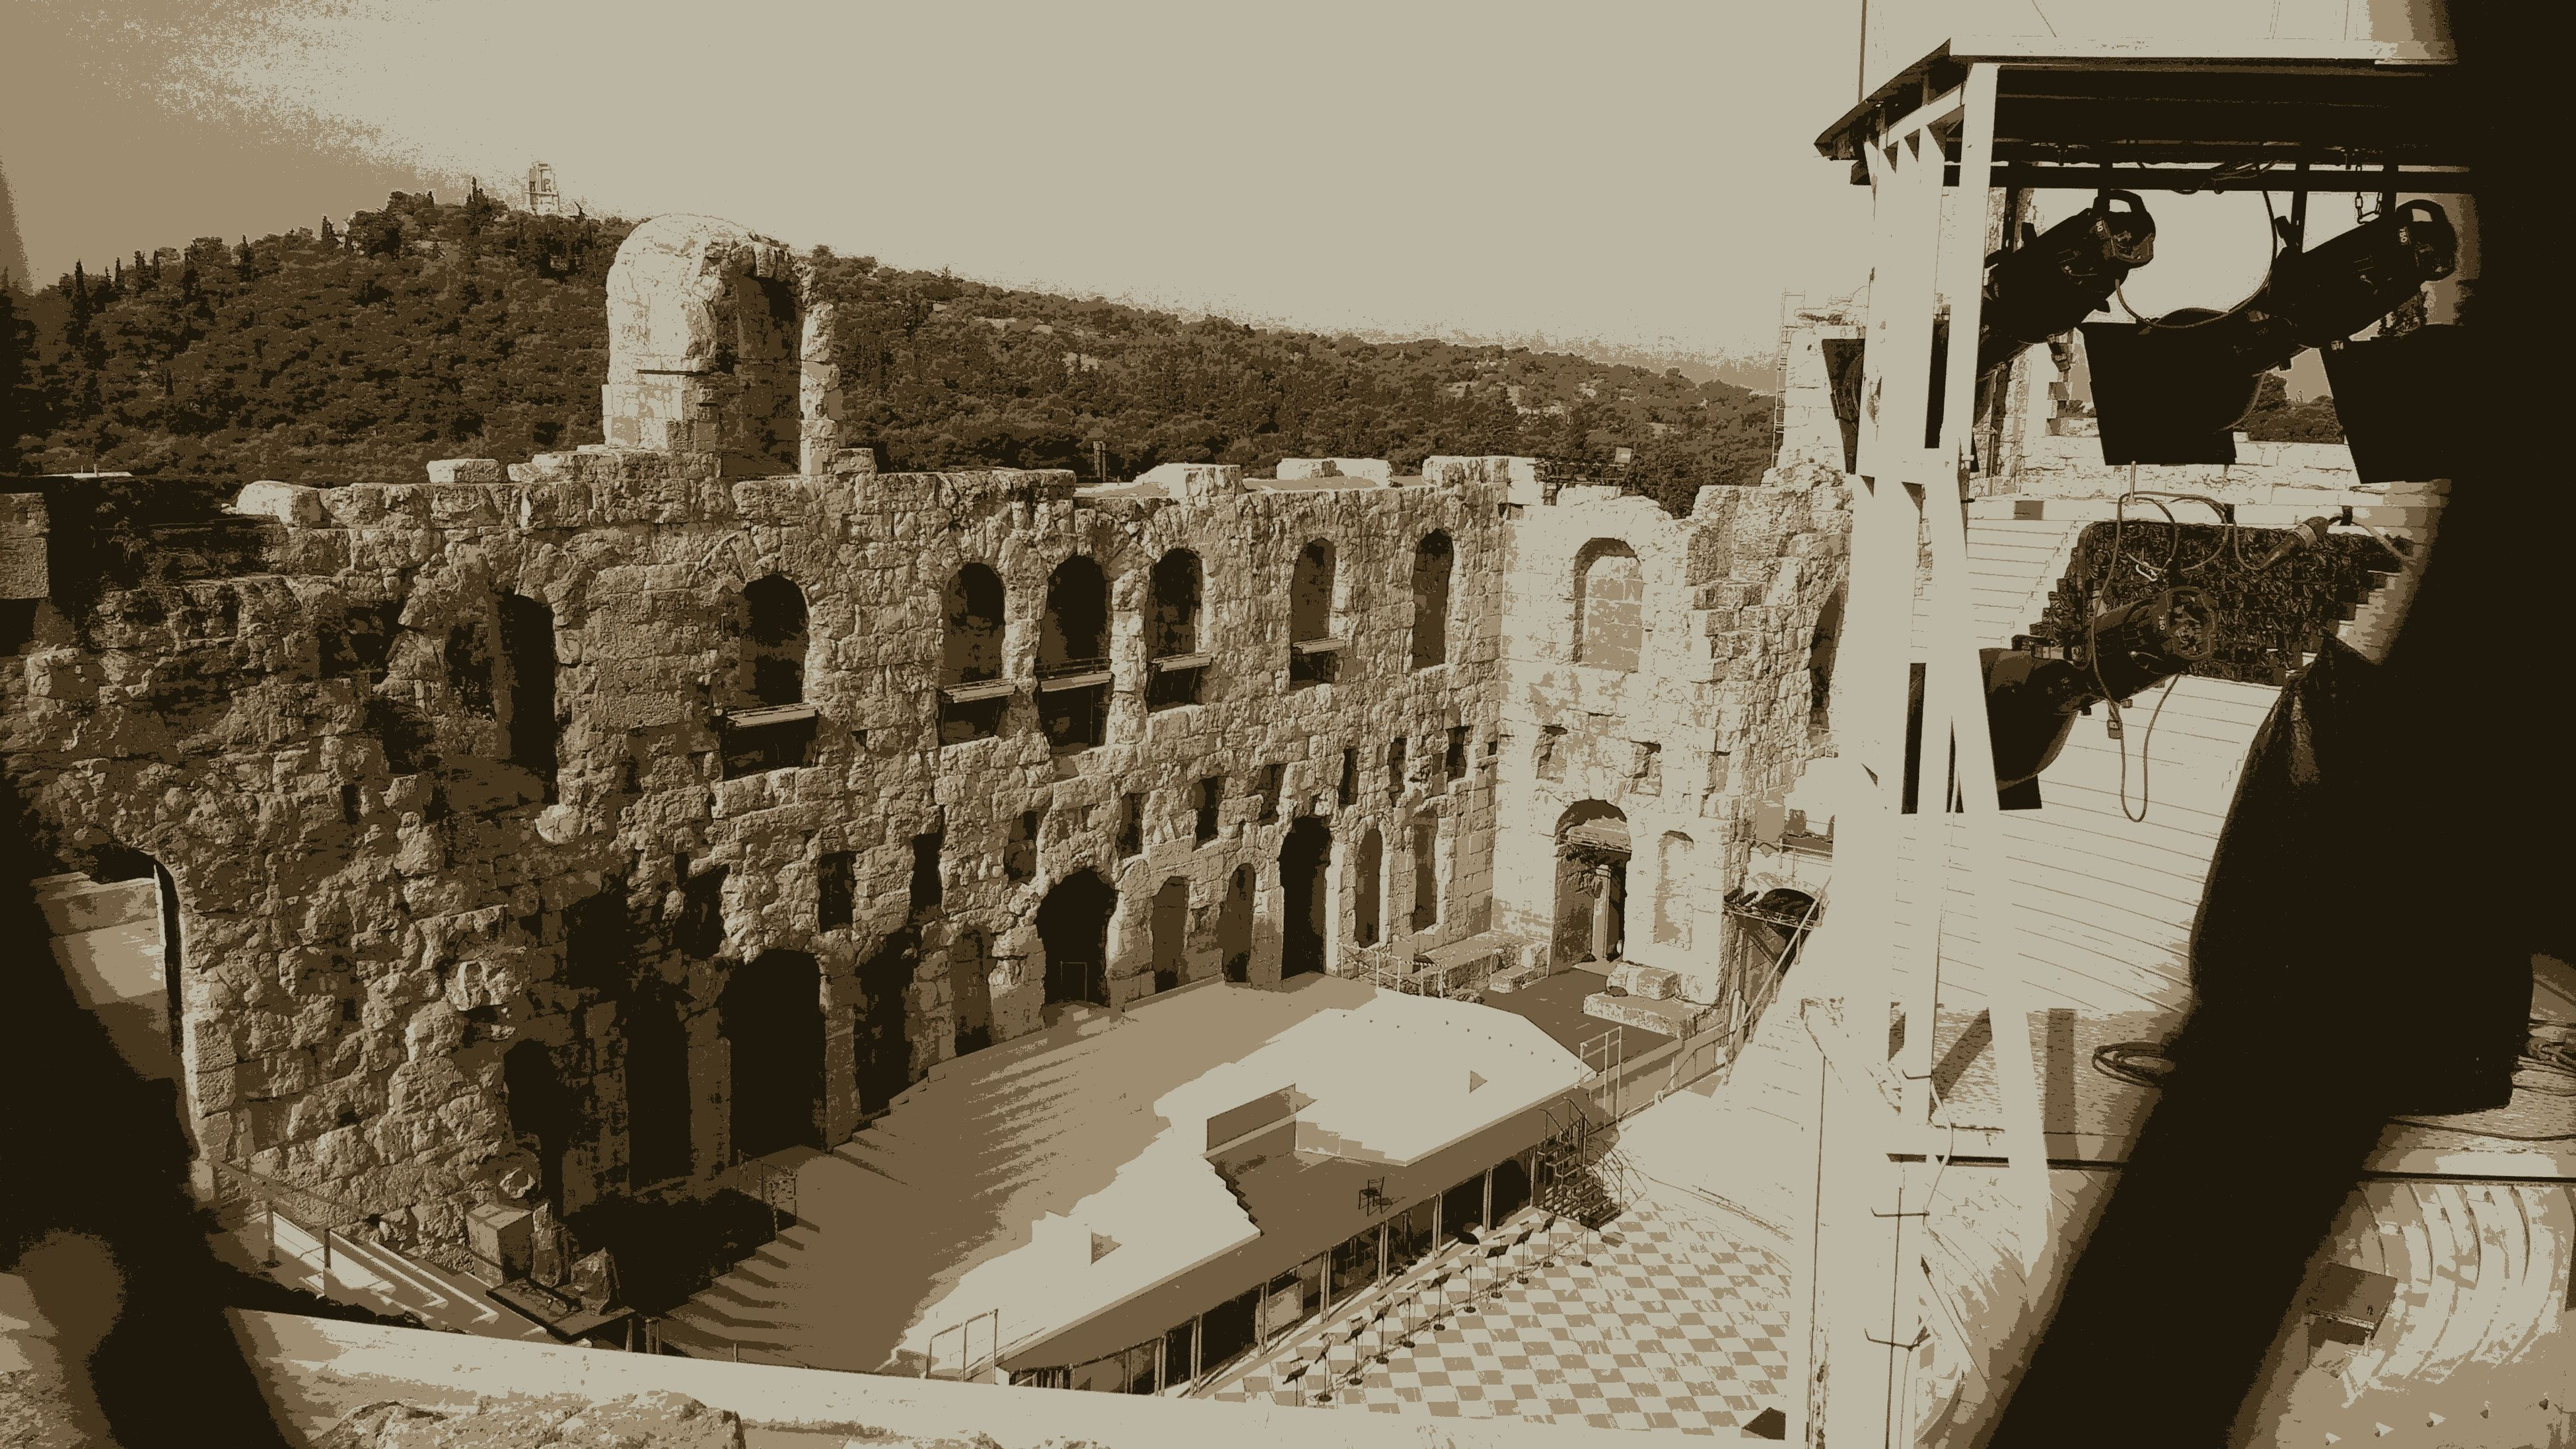 history, real people, architecture, built structure, ancient, old ruin, tourism, travel, men, outdoors, building exterior, leisure activity, lifestyles, ancient civilization, travel destinations, day, women, one person, sky, nature, people